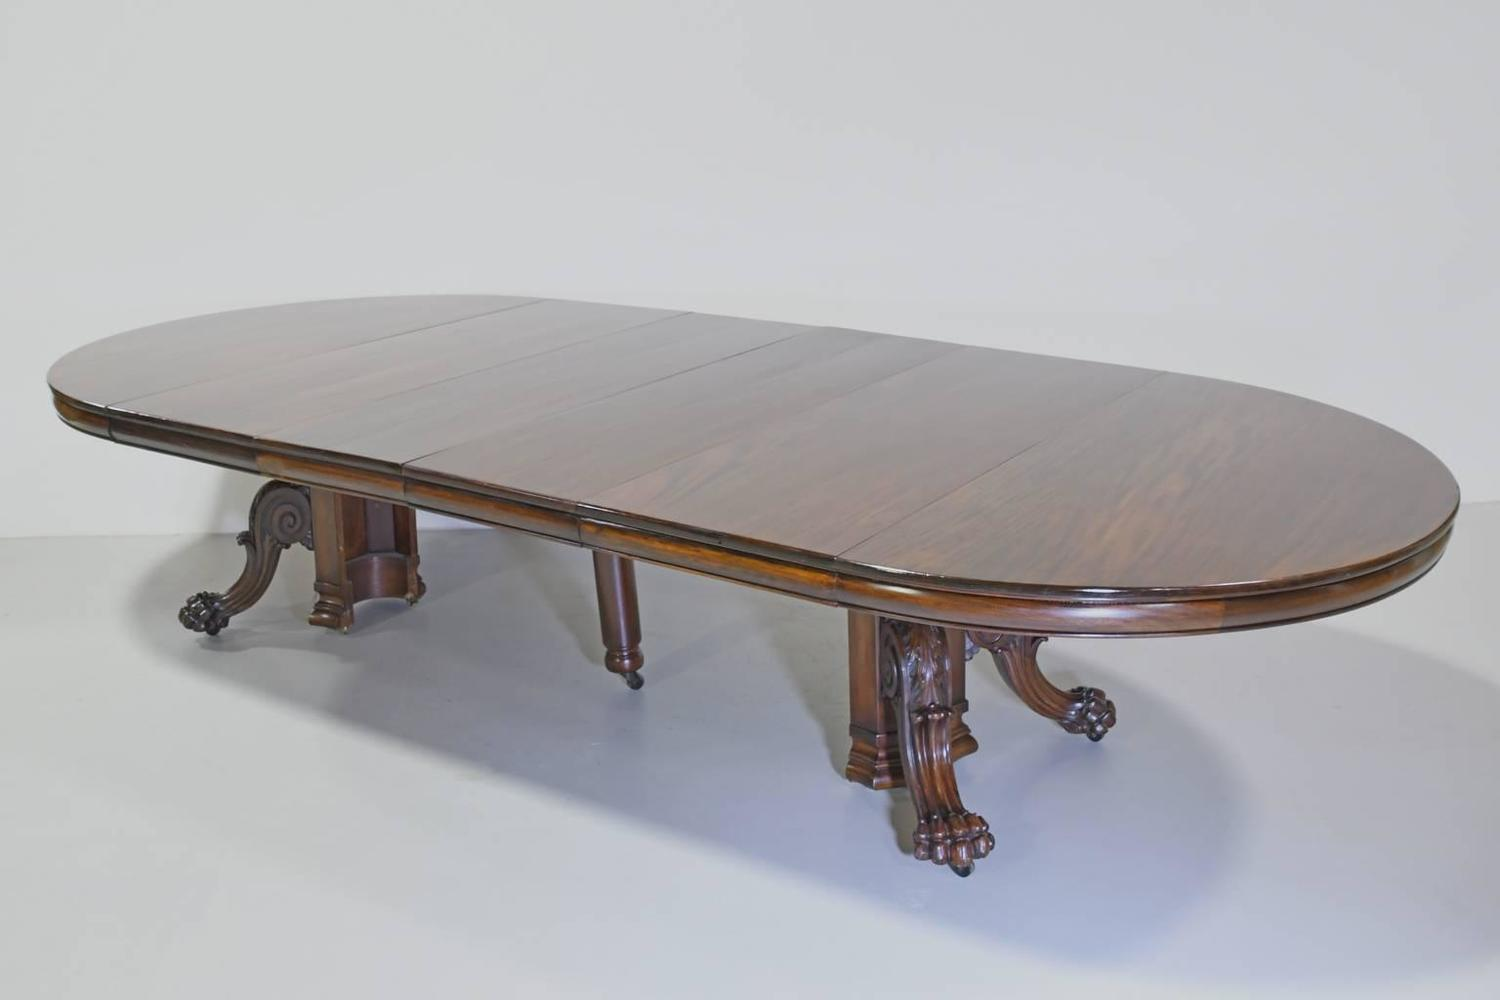 Round American Empire Center Pedestal Dining Table With